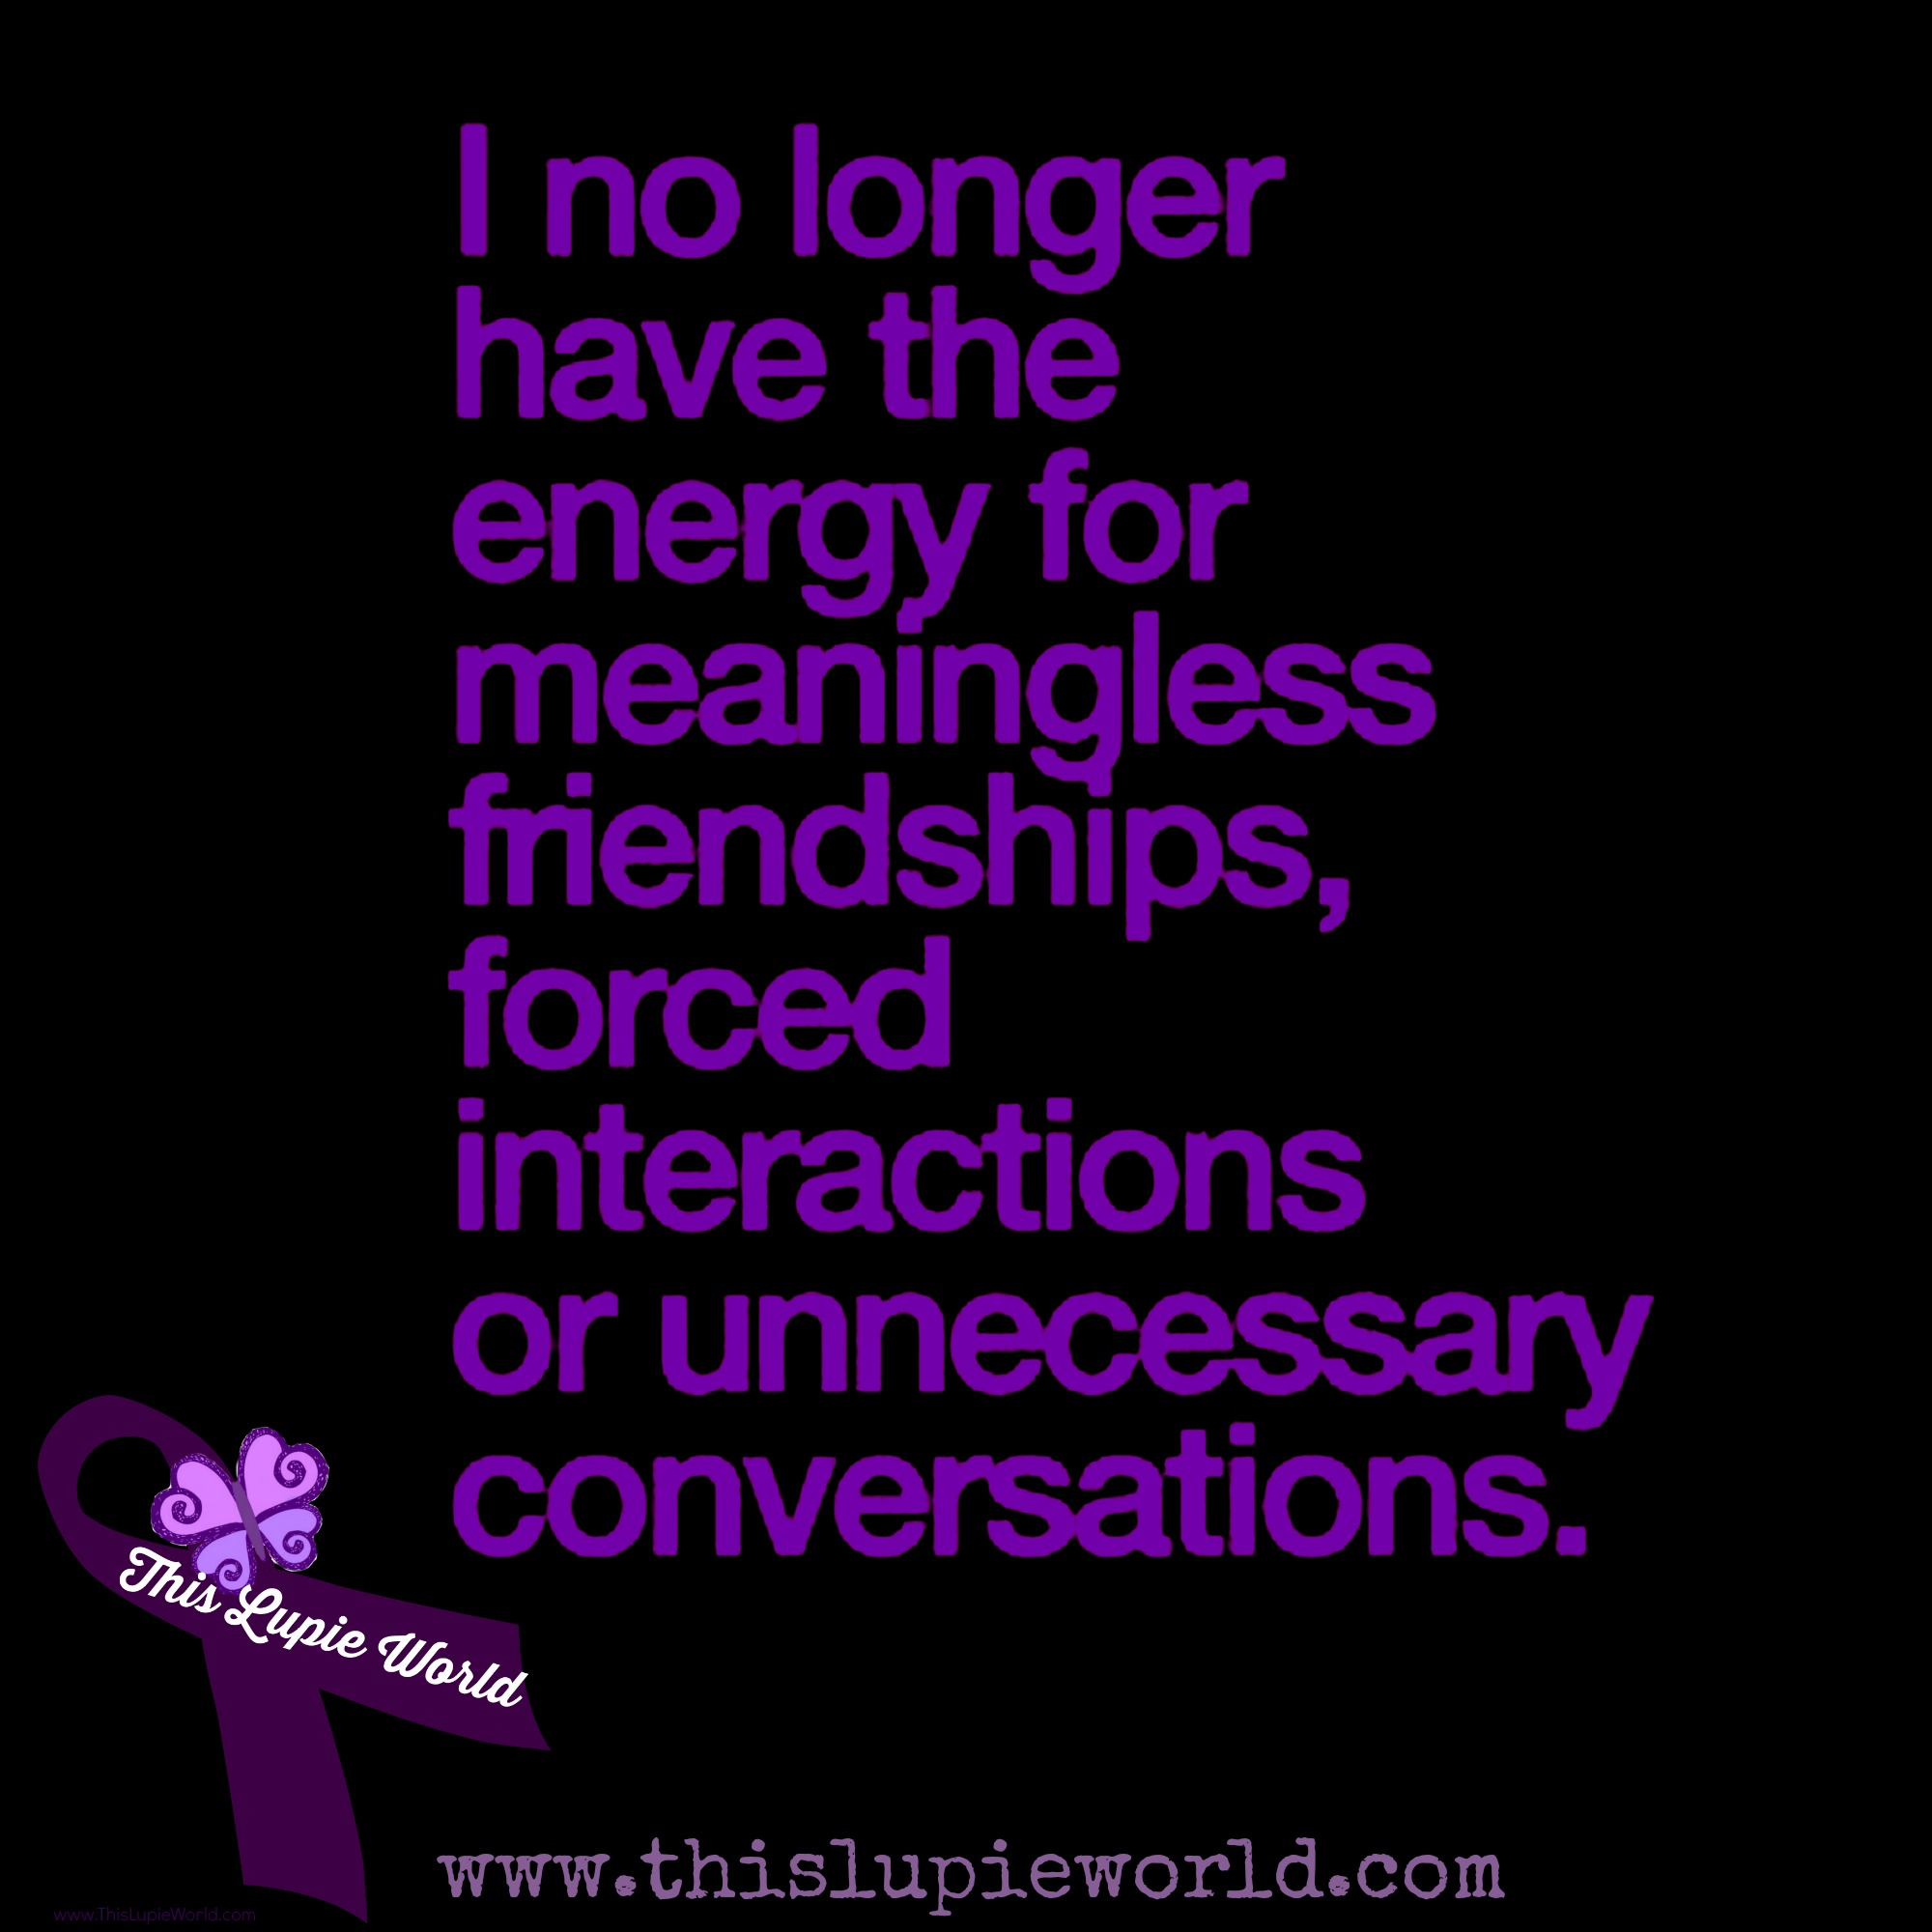 Quotes About One Sided Friendship One Sided Friendship Quotes Tumblr Best Lost Friendship Quotes On